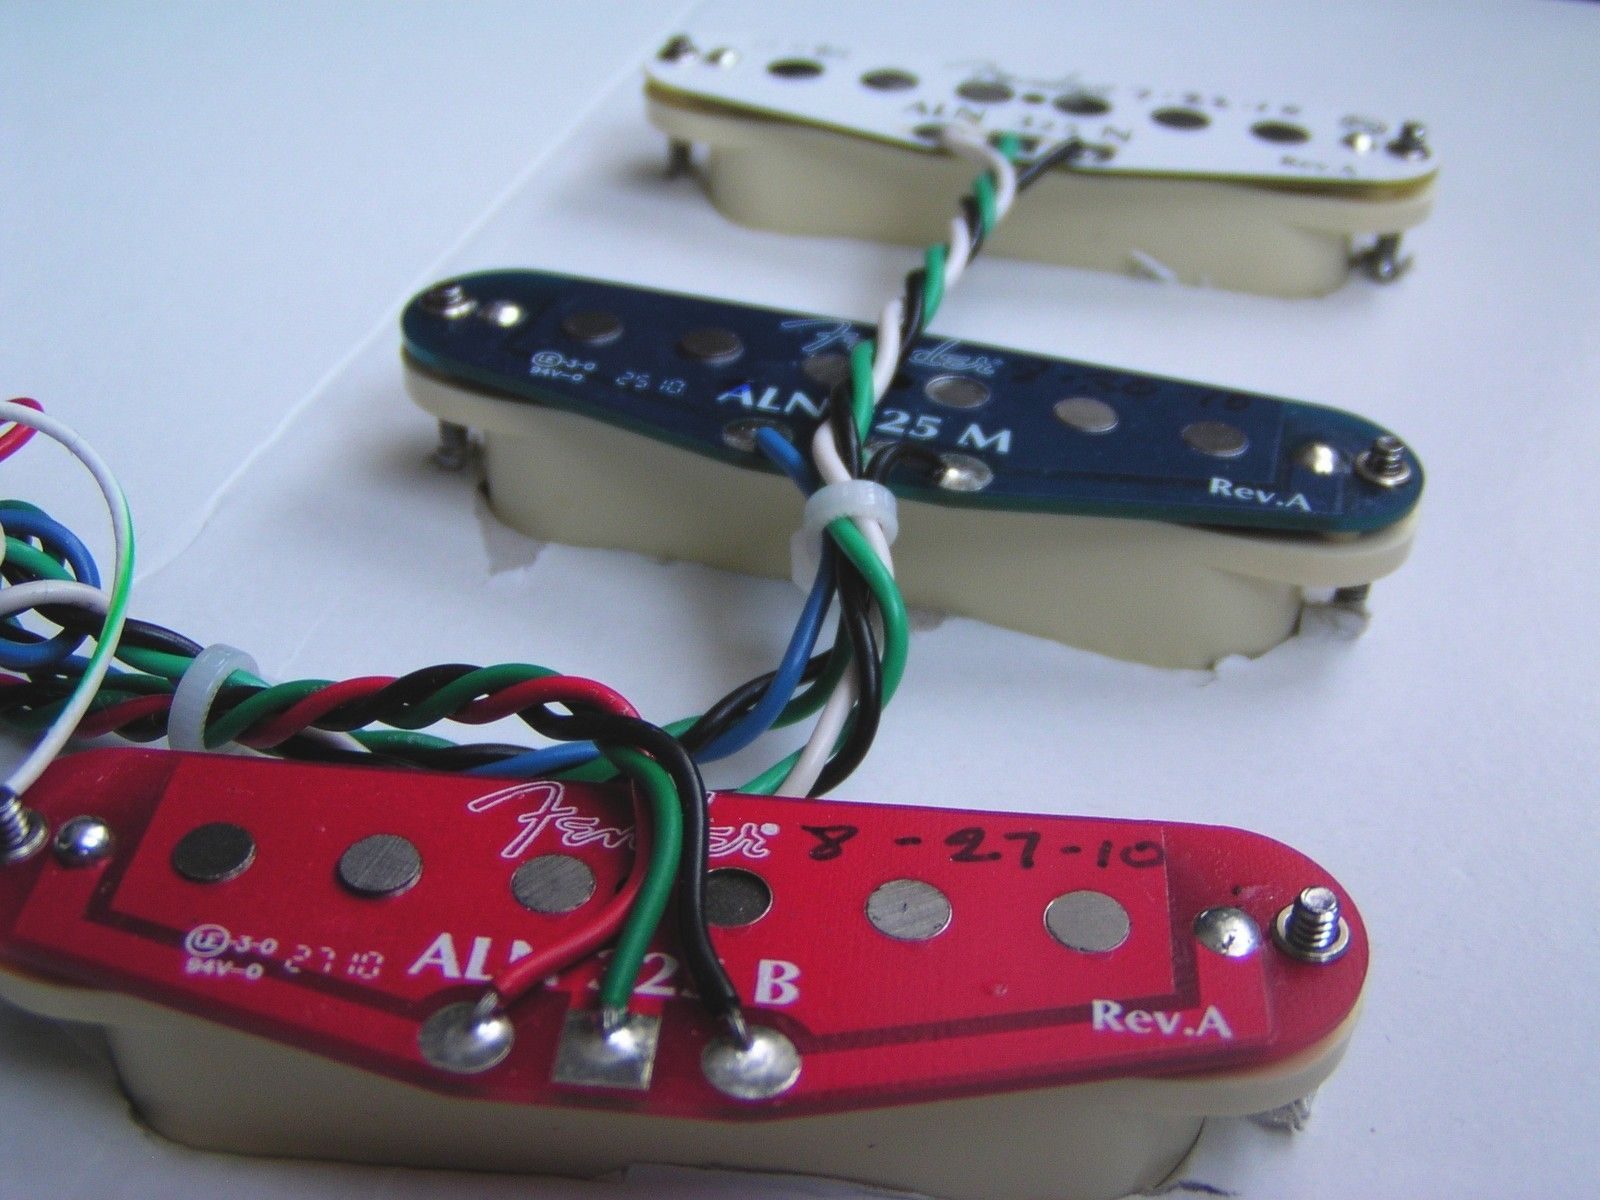 Fender Hot Noiseless Pickup Wiring Diagram Solutions N3 Pickups Stratocaster Arbortech Us